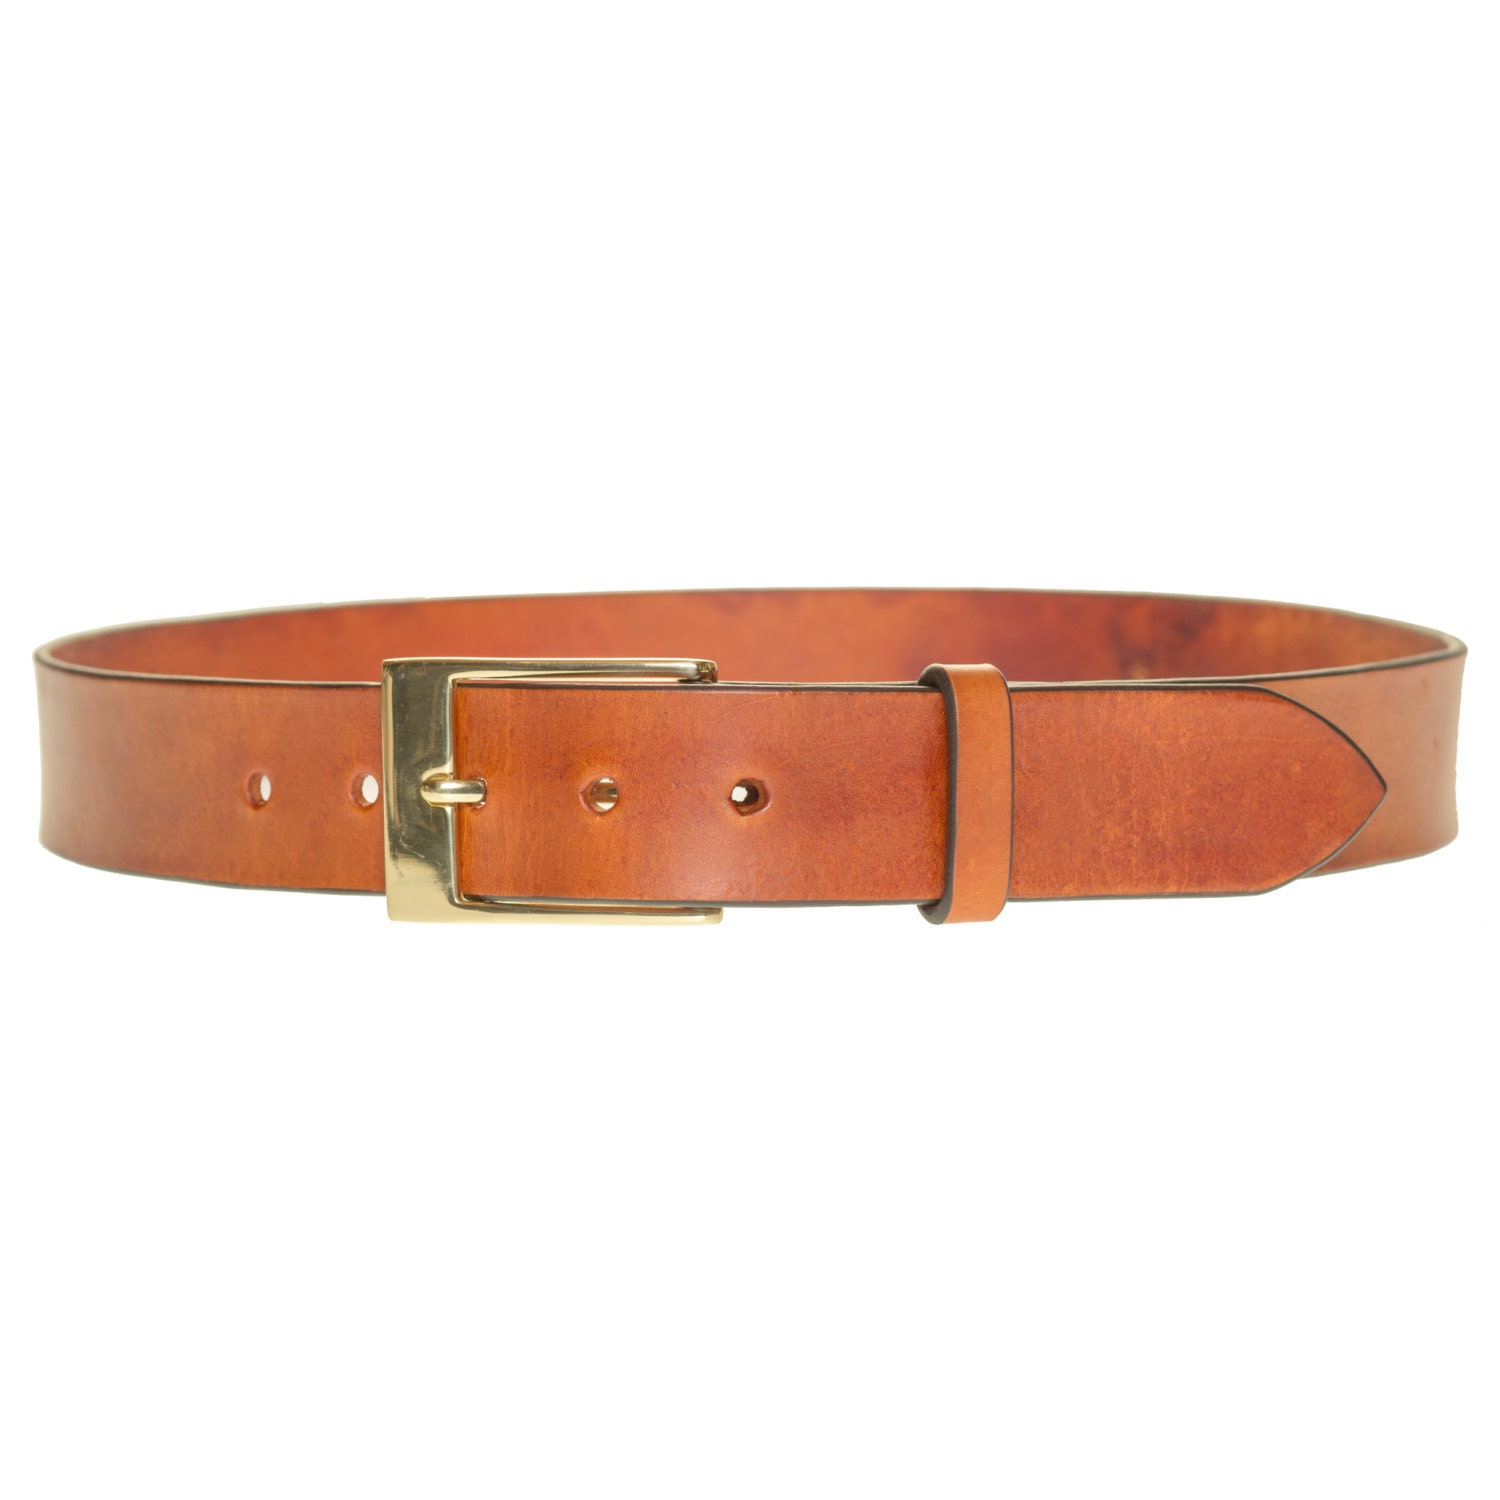 Shop Men's Leather Belts At free-cabinetfile-downloaded.ga And Enjoy Free Shipping & Returns On All Orders.